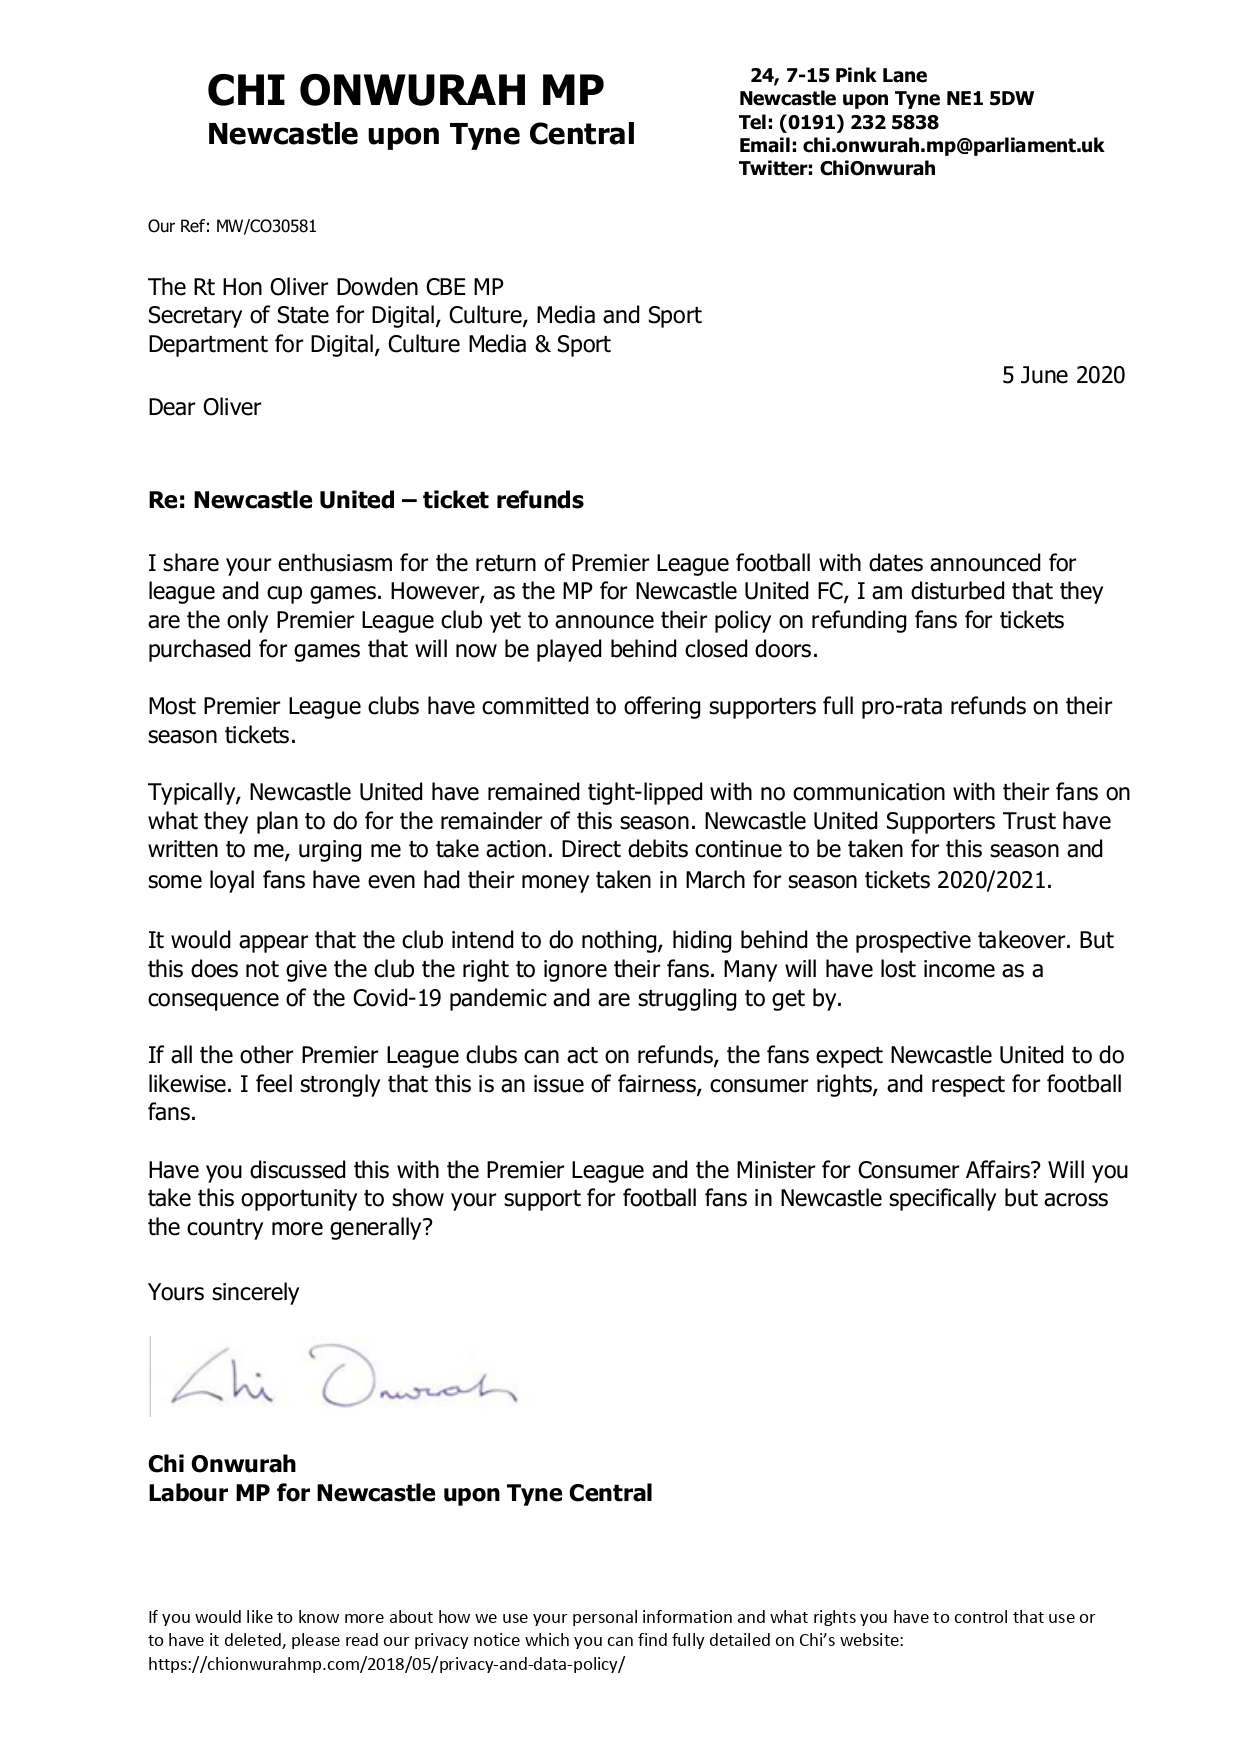 Chi writes to the Secretary of State calling for NUFC Ticket refunds